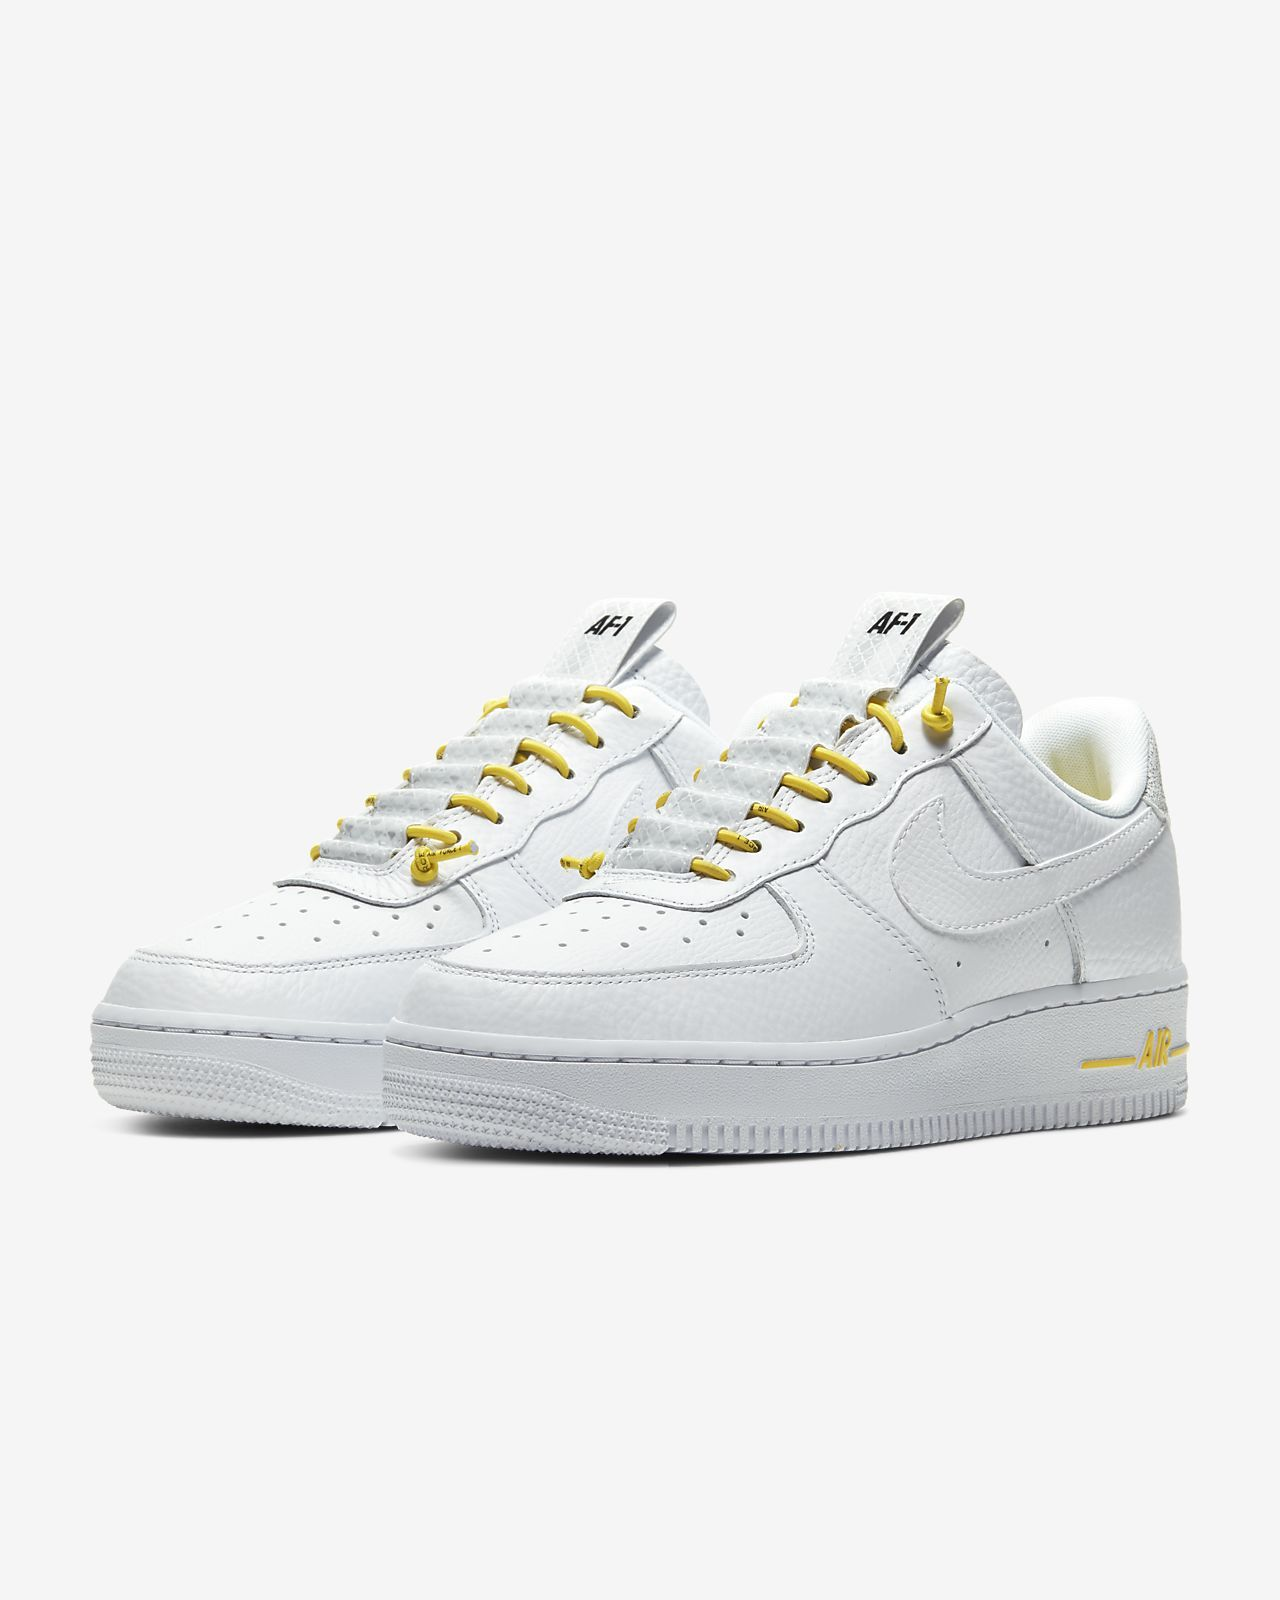 Air Force 1 '07 Lux Women's Shoe in 2020 | Nike air shoes ...